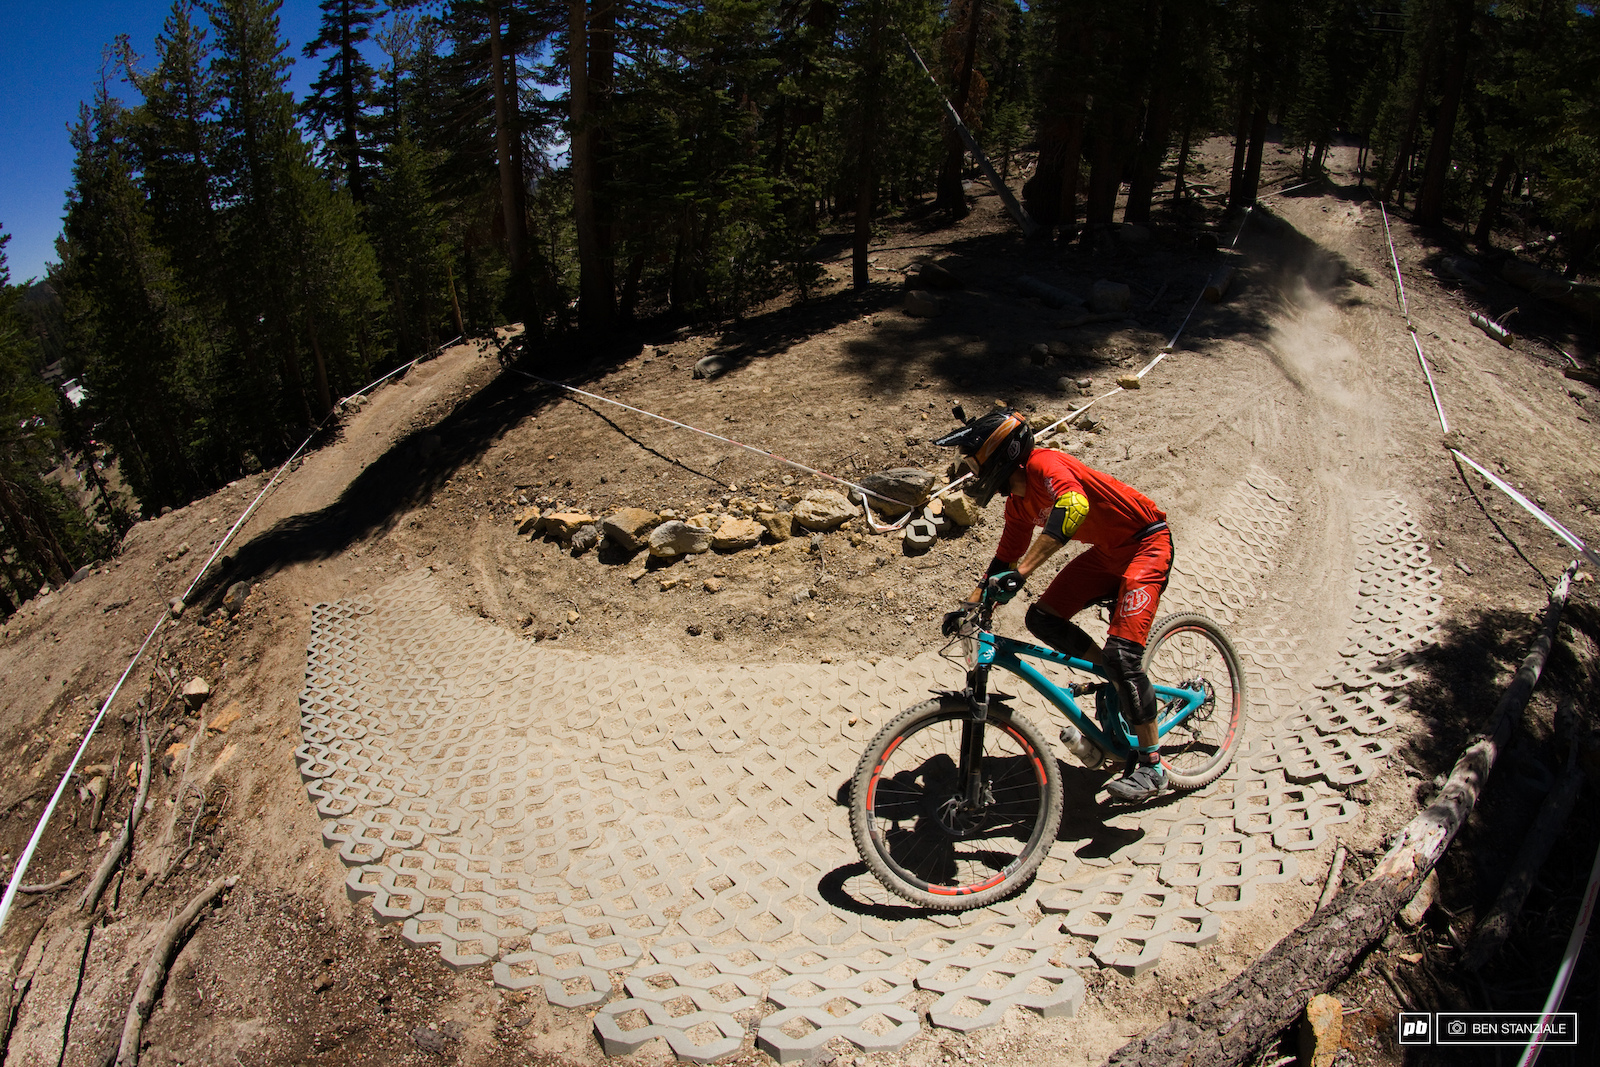 Riders continue down Stage 3 filled with a mix of turns and pavers rough straight sections and a slalom section.